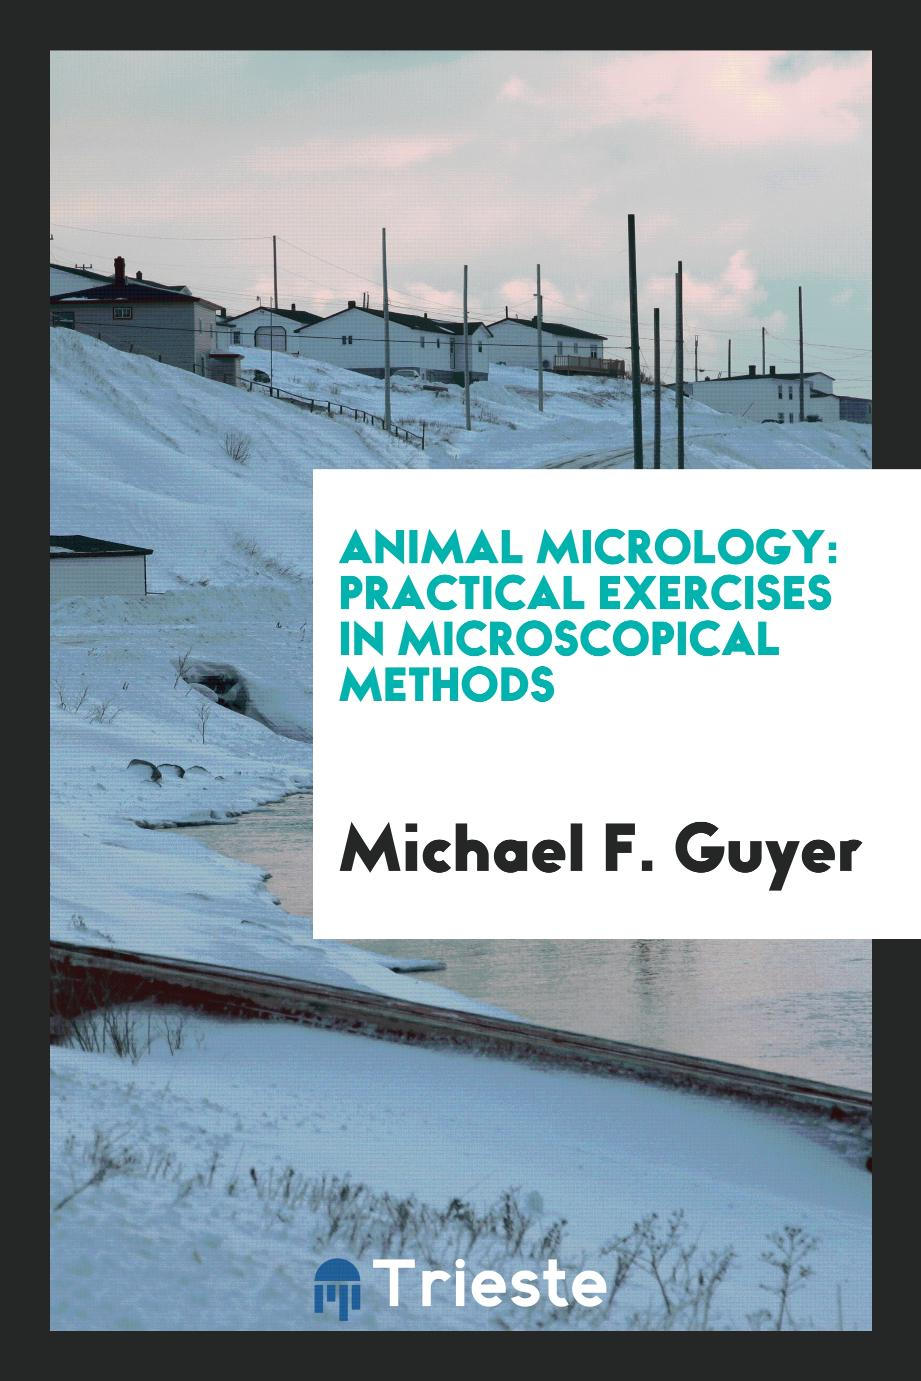 Animal Micrology: Practical Exercises in Microscopical Methods